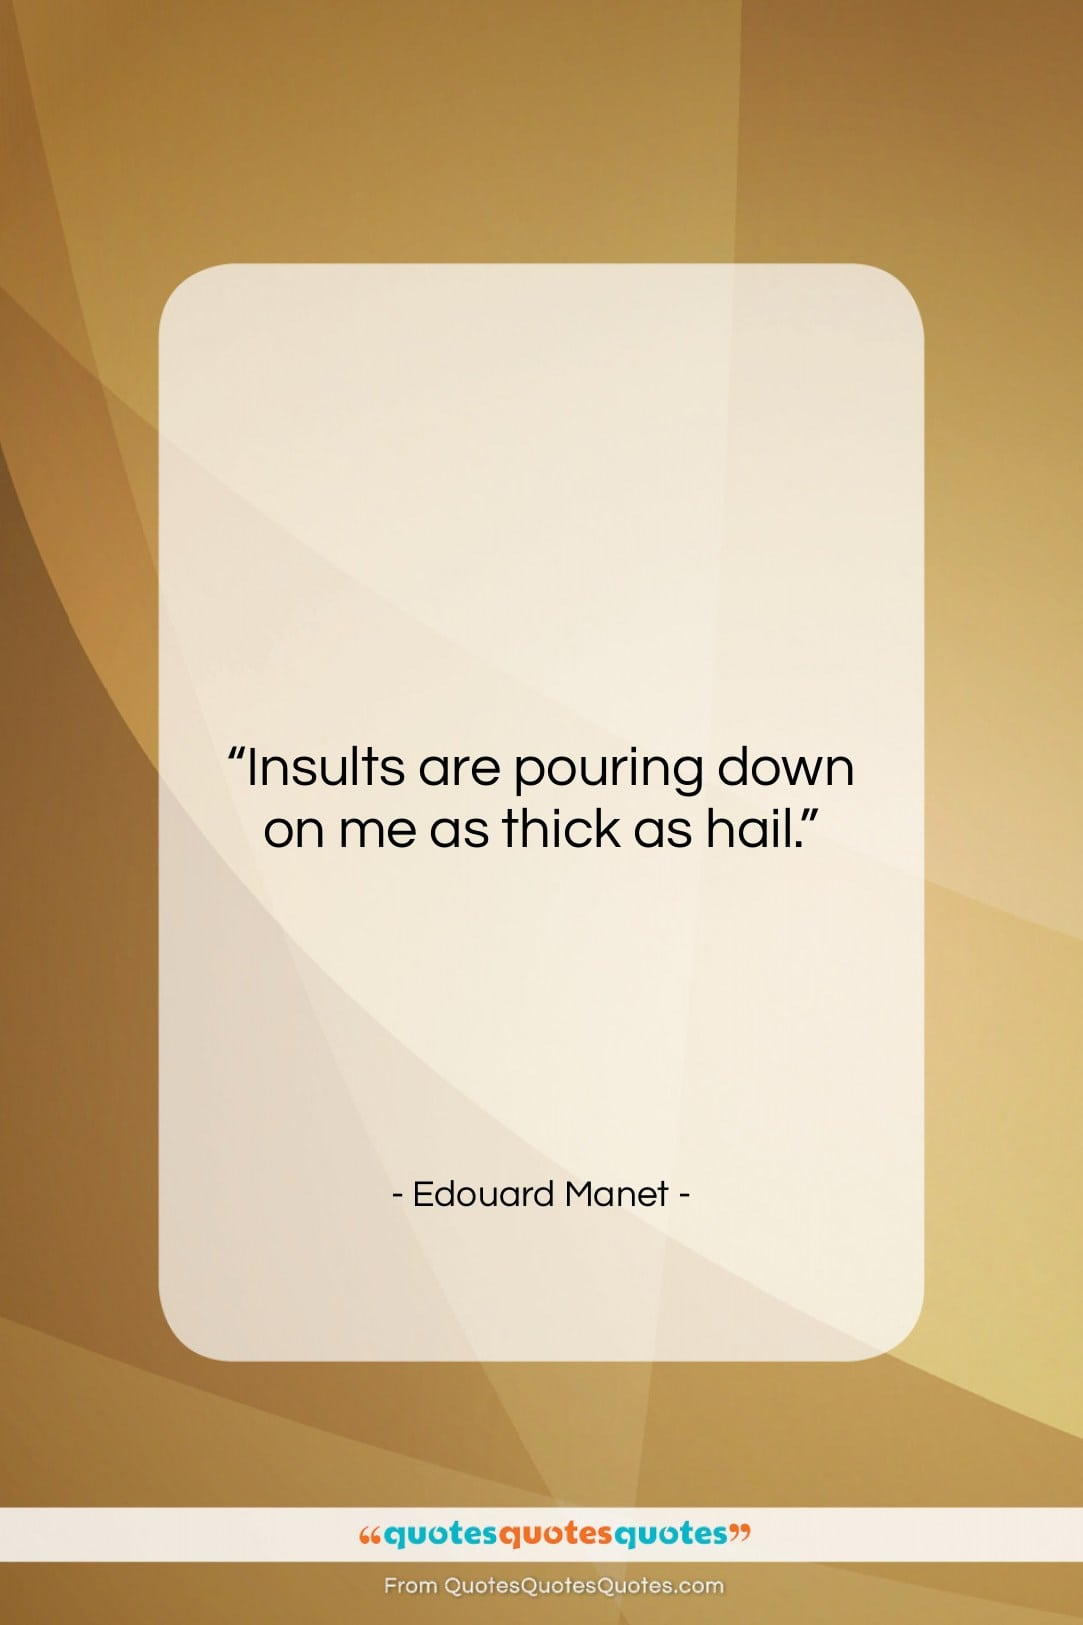 """Edouard Manet quote: """"Insults are pouring down on me as…""""- at QuotesQuotesQuotes.com"""